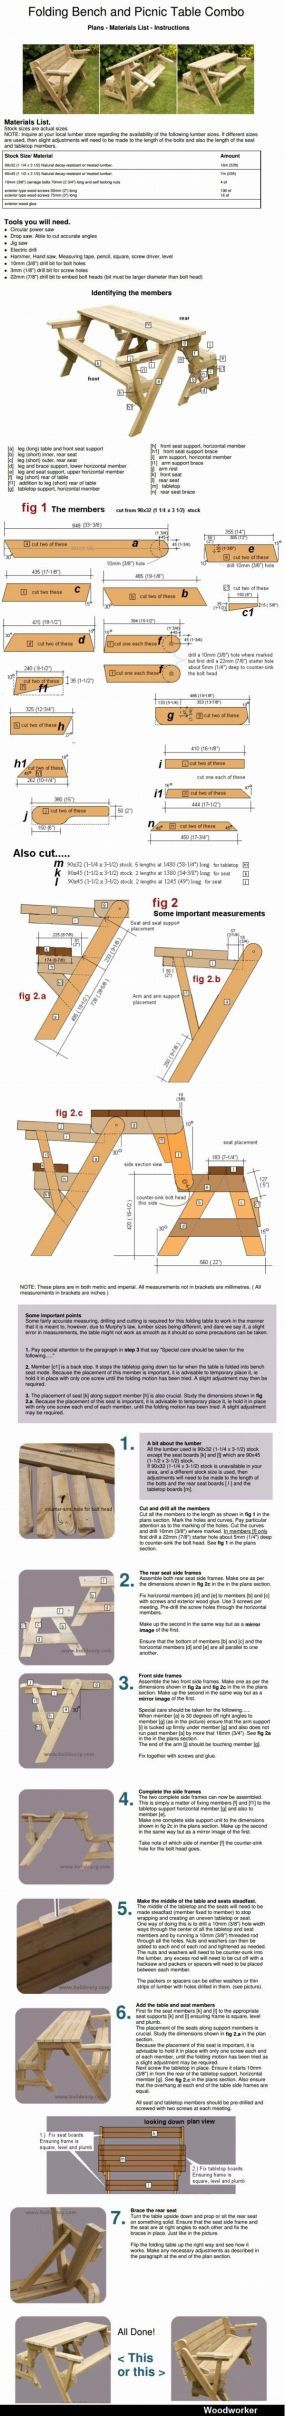 Folding Bench And Picnic Table Combo Complete Plans Wooden Chair Plan Click To Enlarge